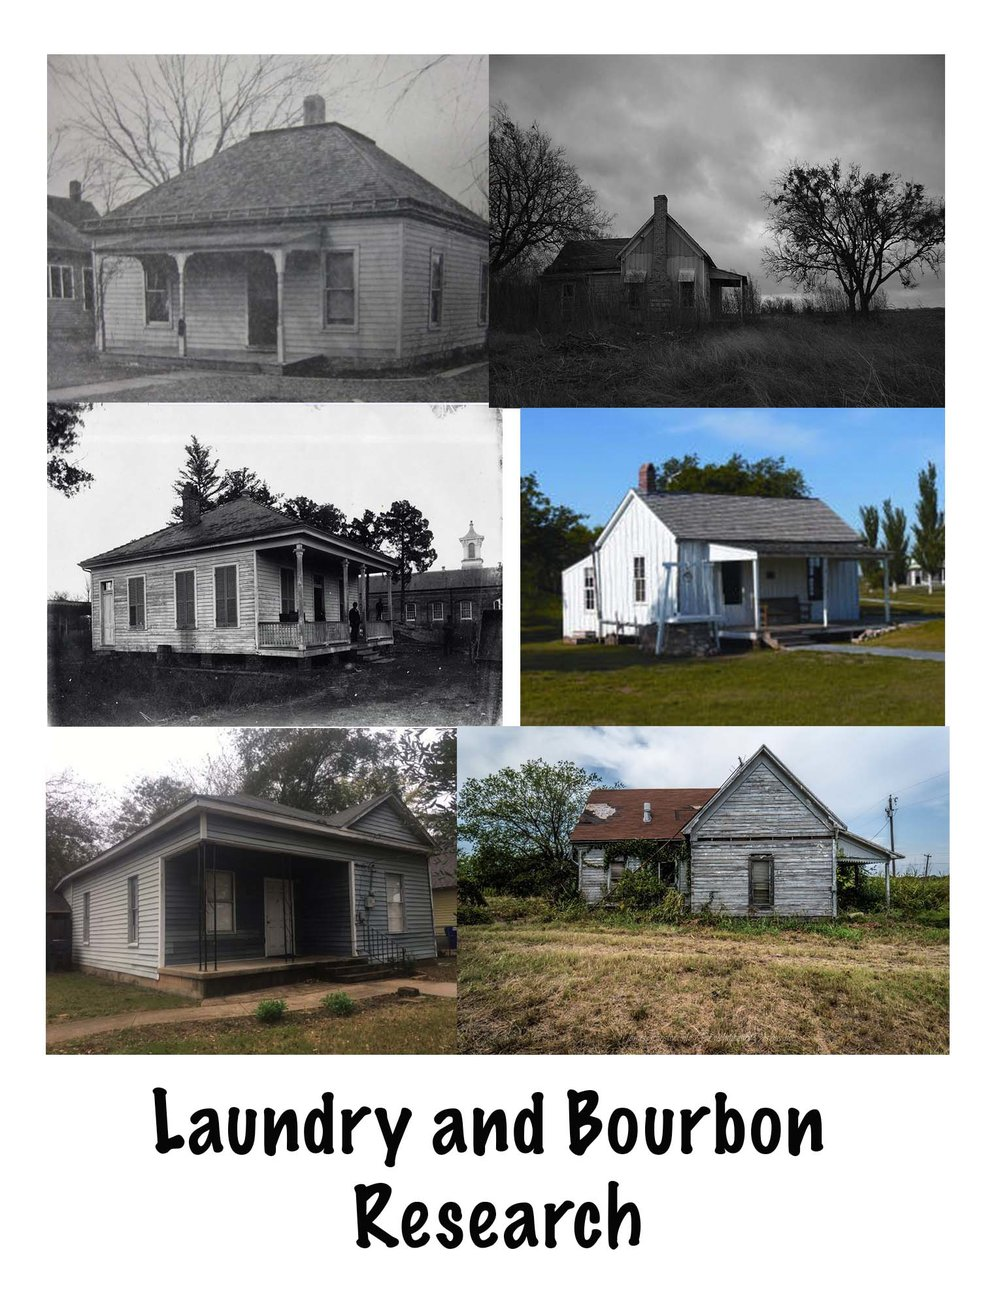 LaundryAndBourbonResearch.jpg